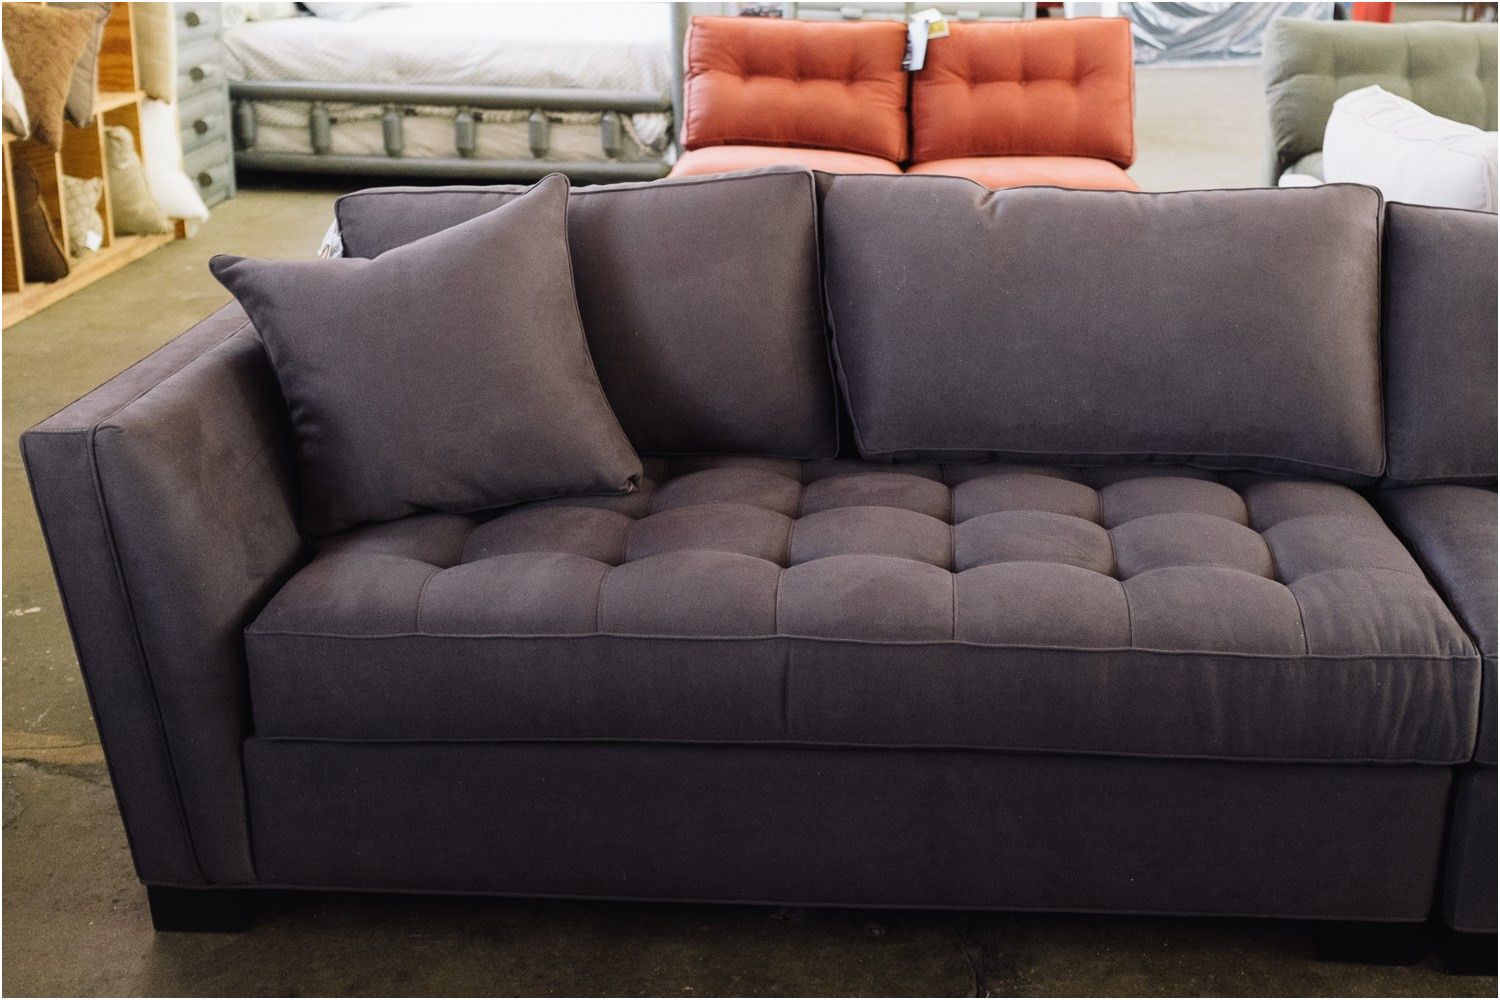 Exotisch Chesterfield Sofa Wildlederoptik Couch Mobel Pinterest